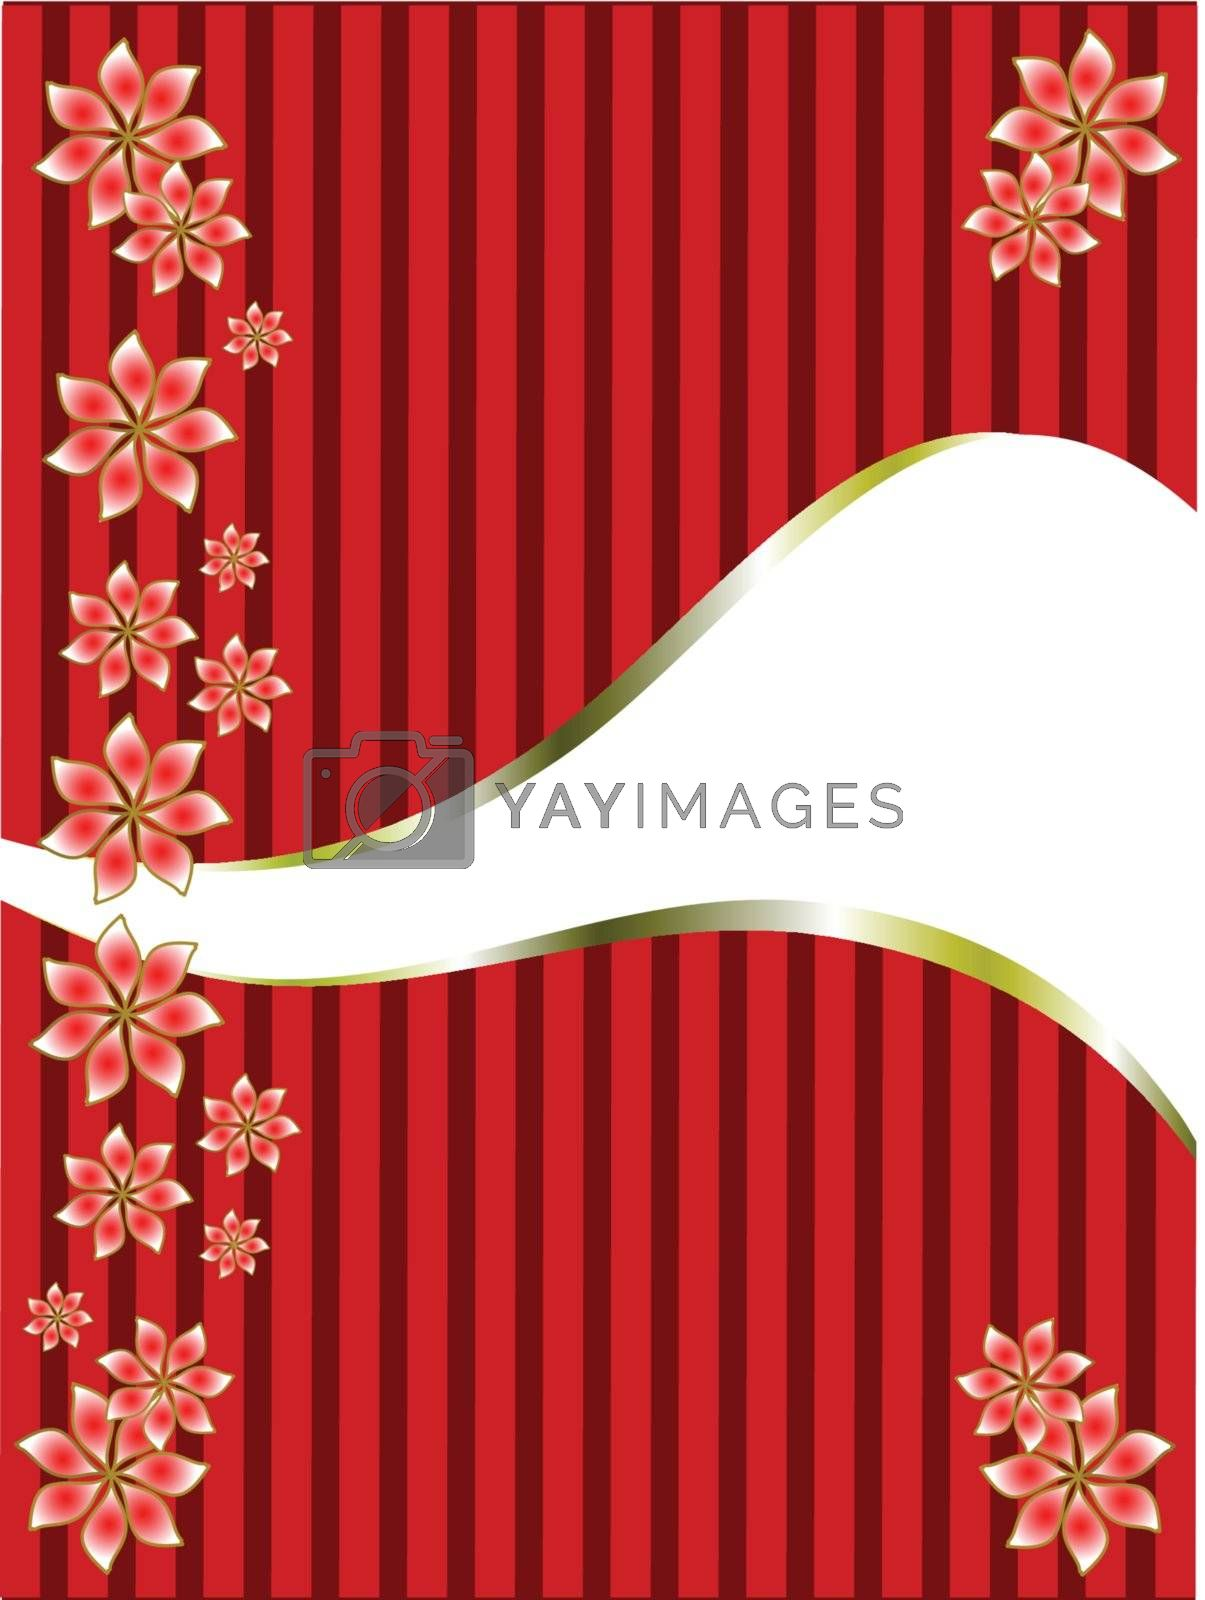 Royalty free image of a gold floral design  by mhprice